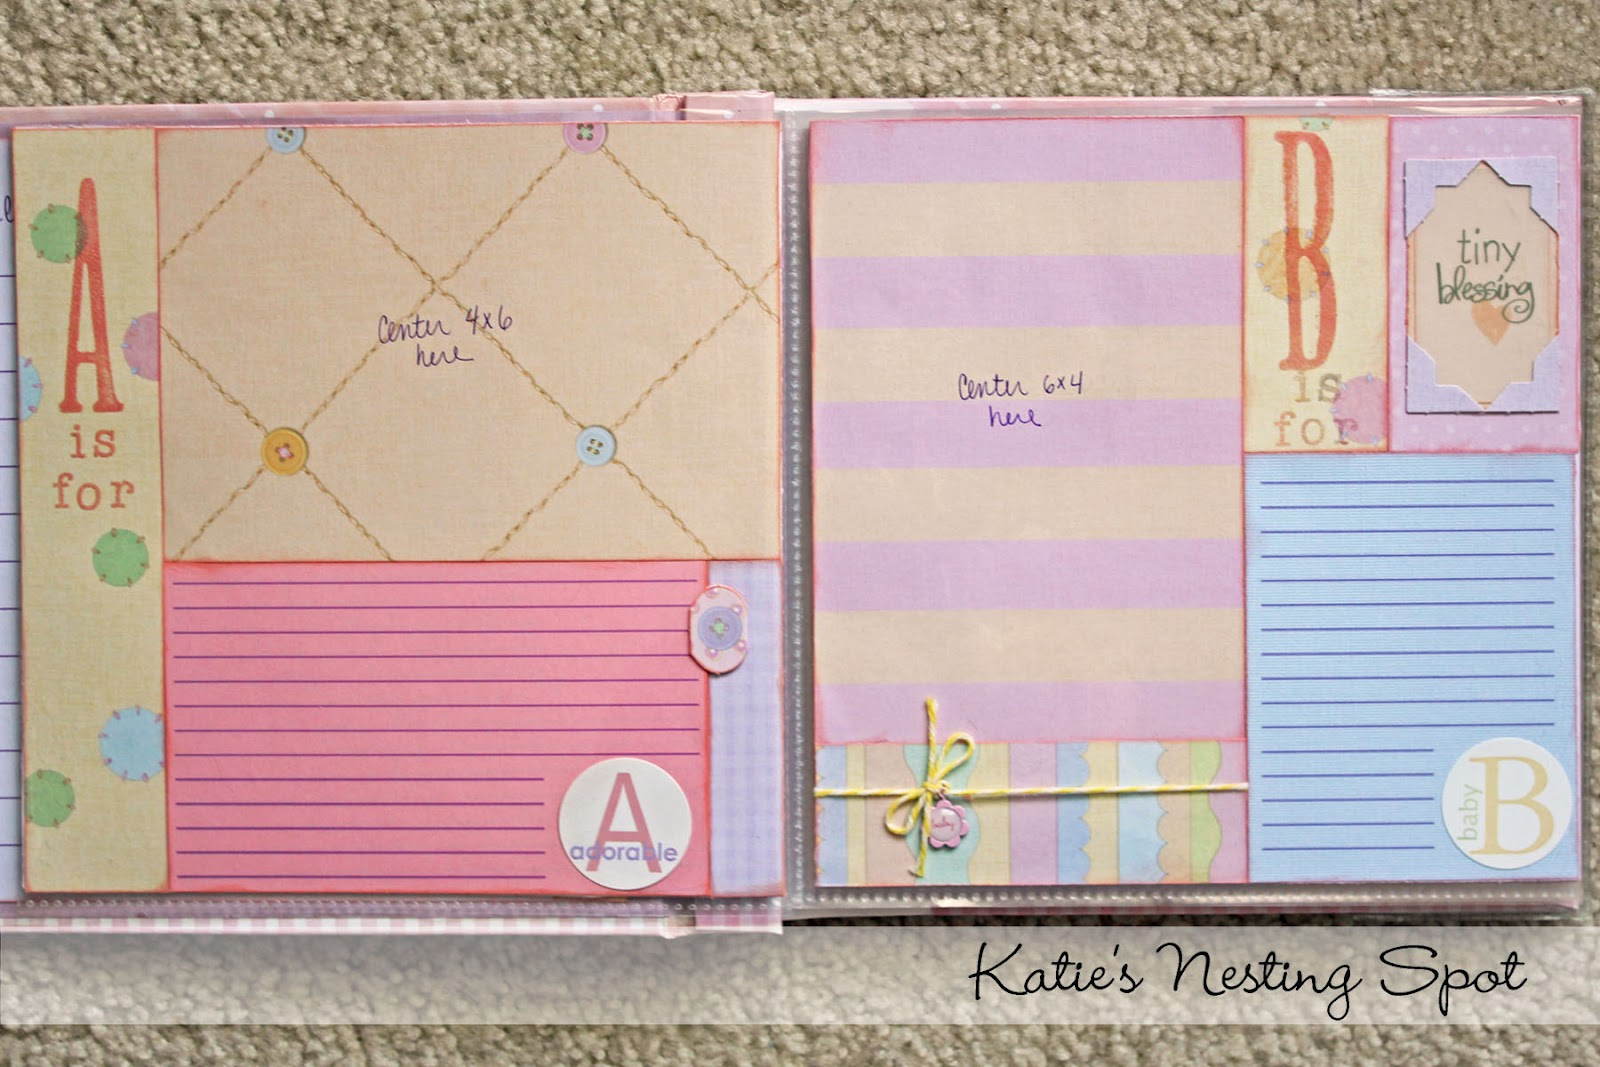 Abc scrapbook ideas list - For The Letter Pages I Designed A Number Of Basic Page Layouts And Reused Them Through Out The Book So The Design Process Was Easier